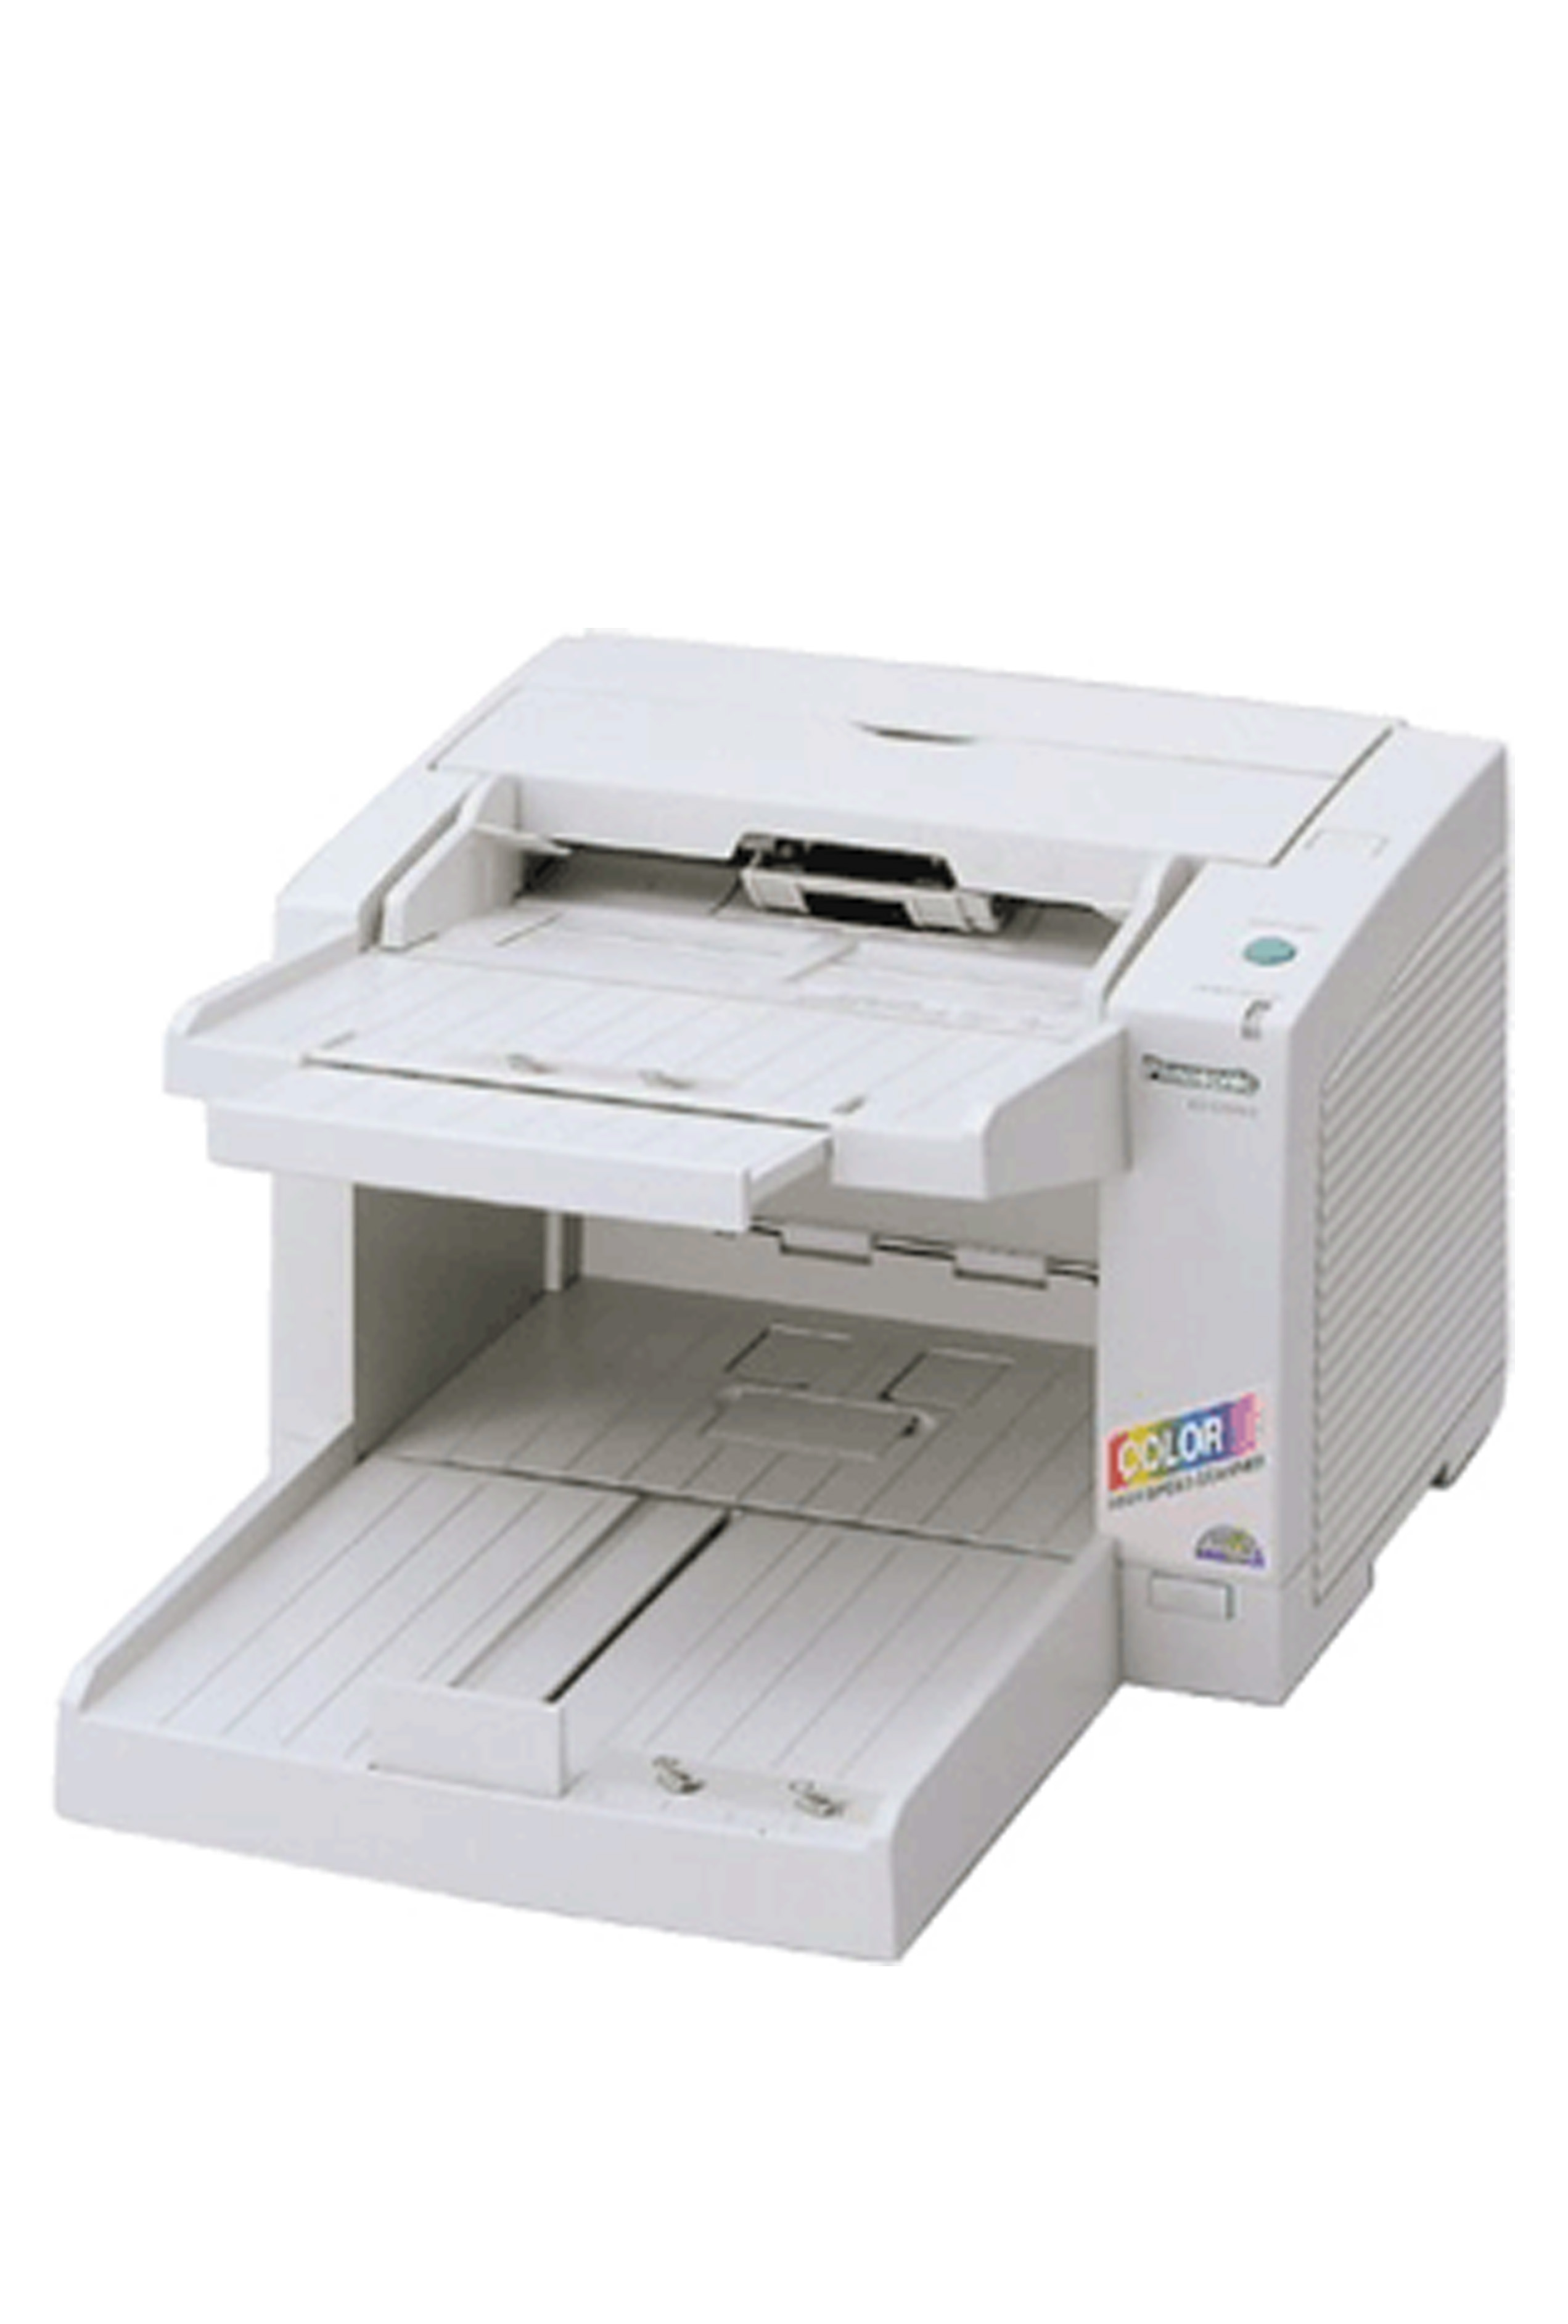 Panasonic KV-S2046C Departmental Color Scanner with GSA Compliant (KV-S2046C-J)